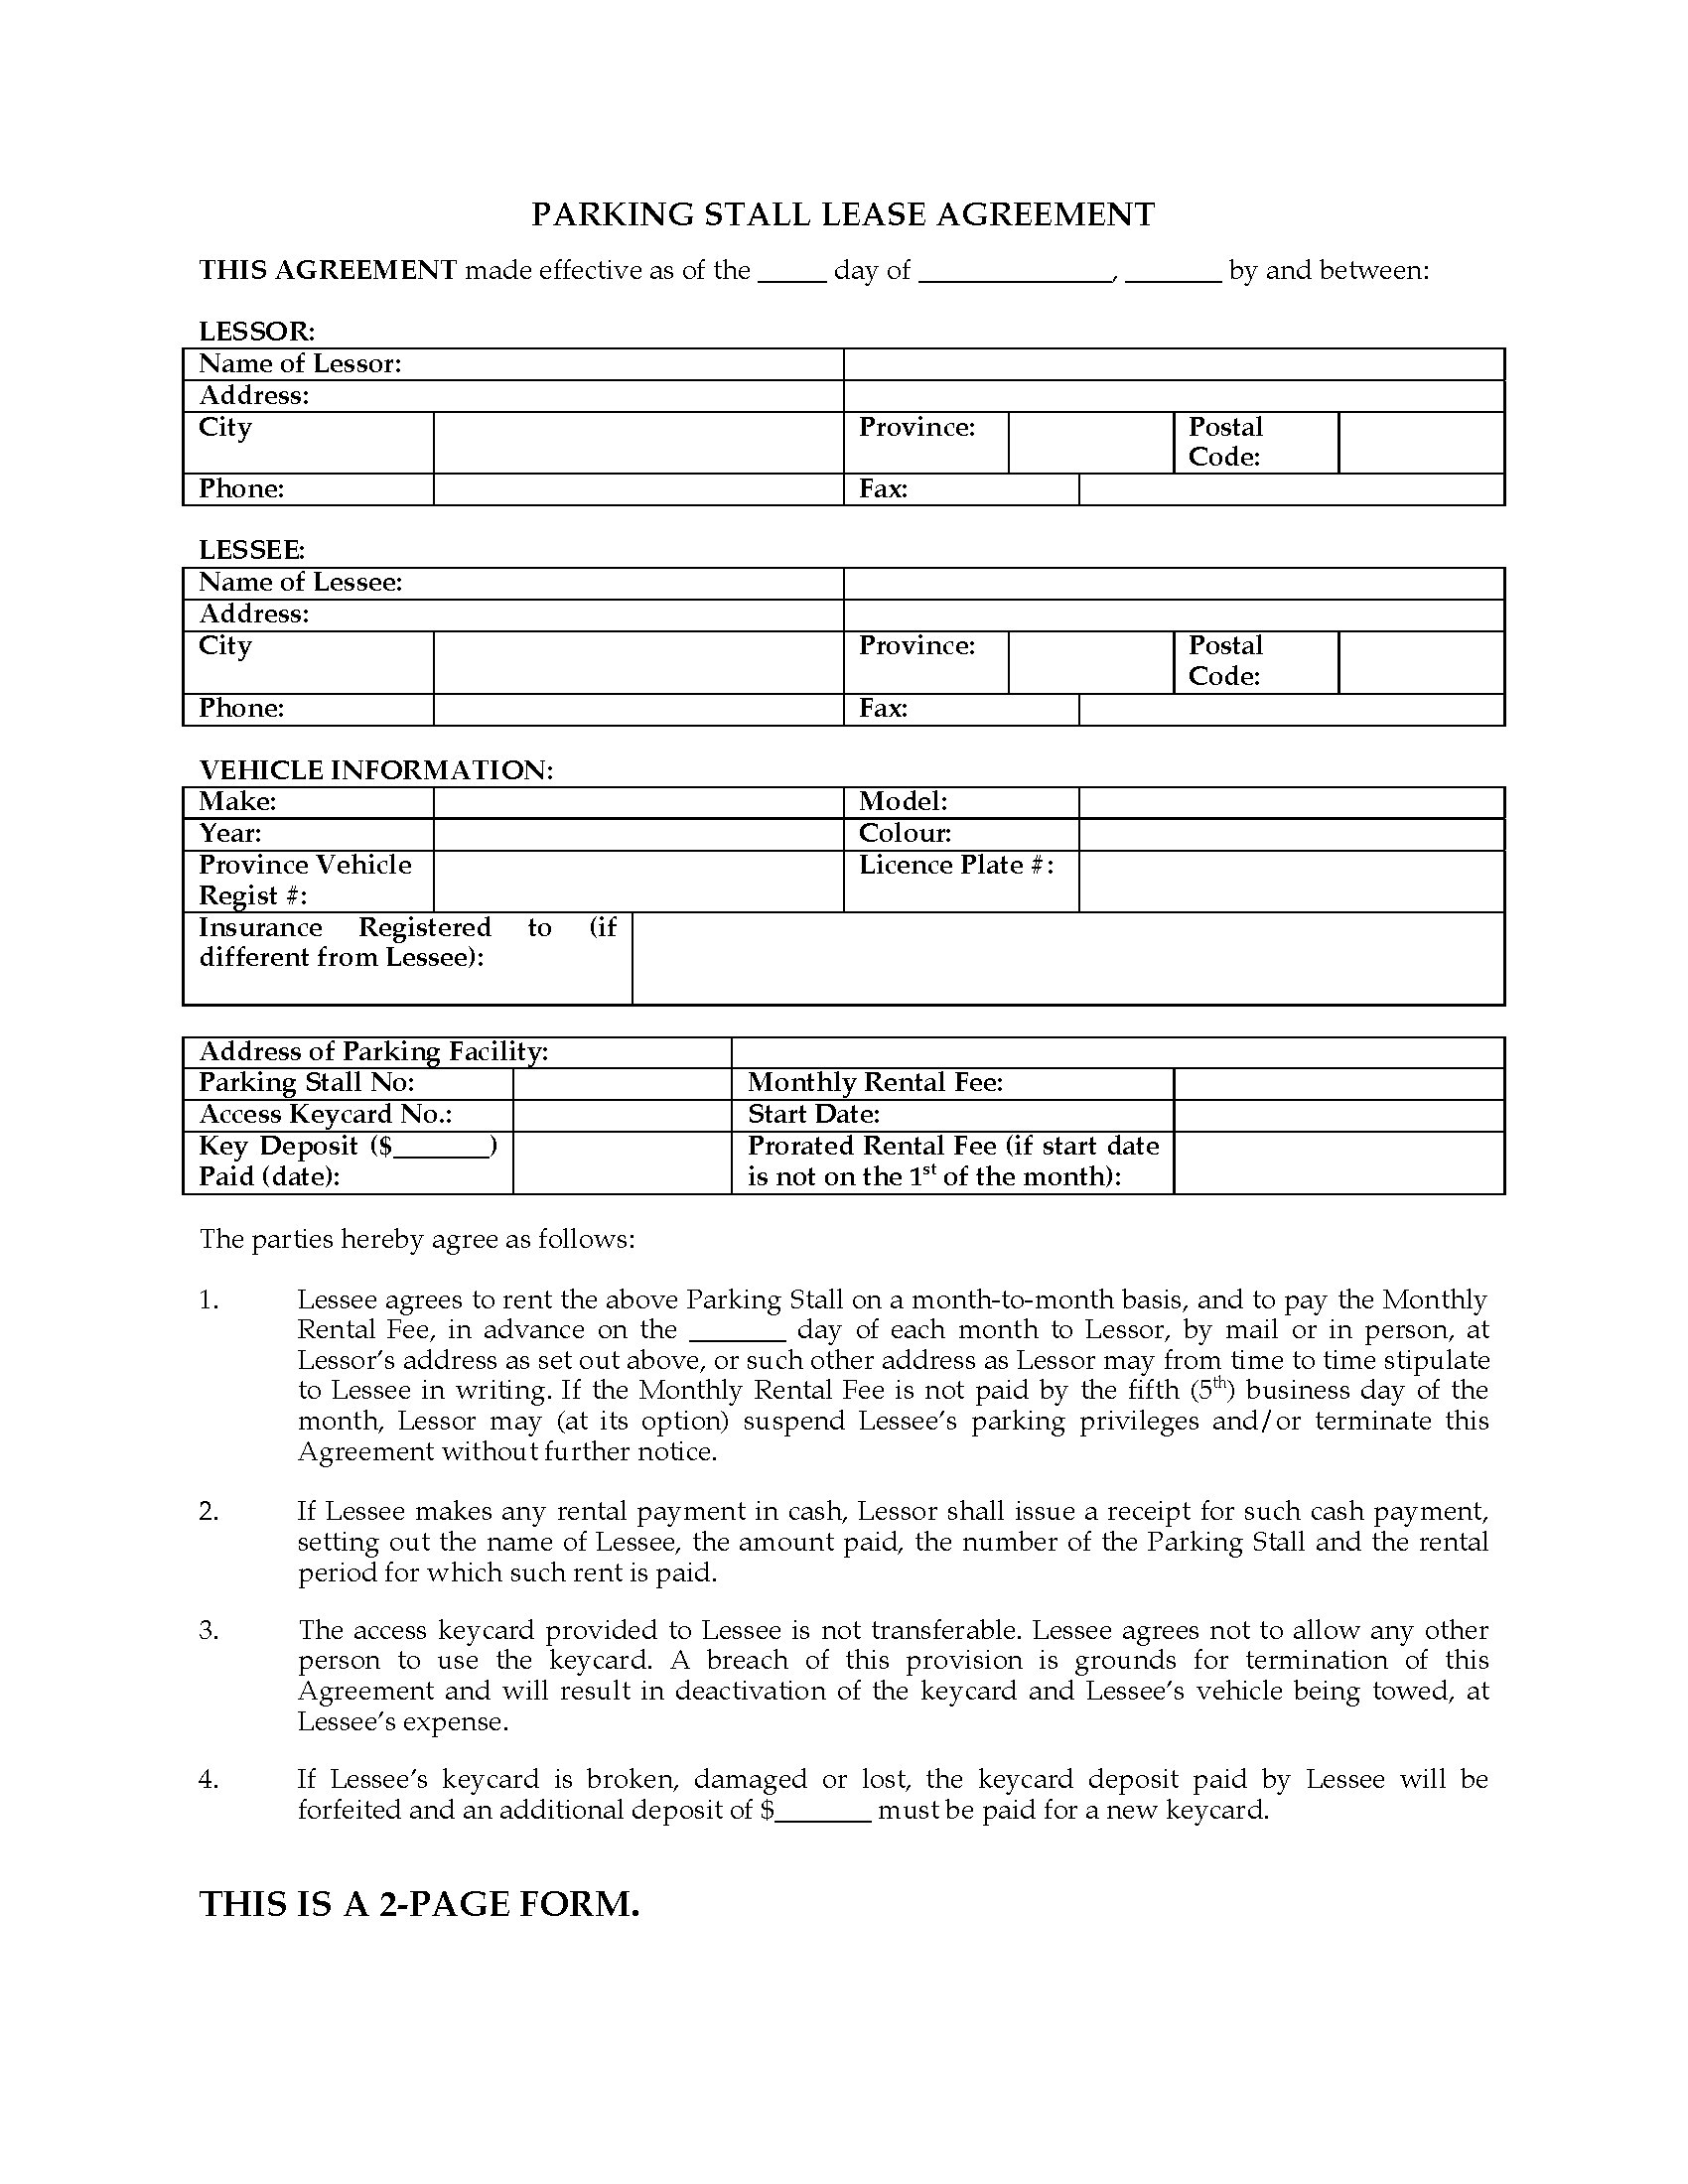 Contract Rental Agreement Template Quebec Parking Stall Lease Agreement